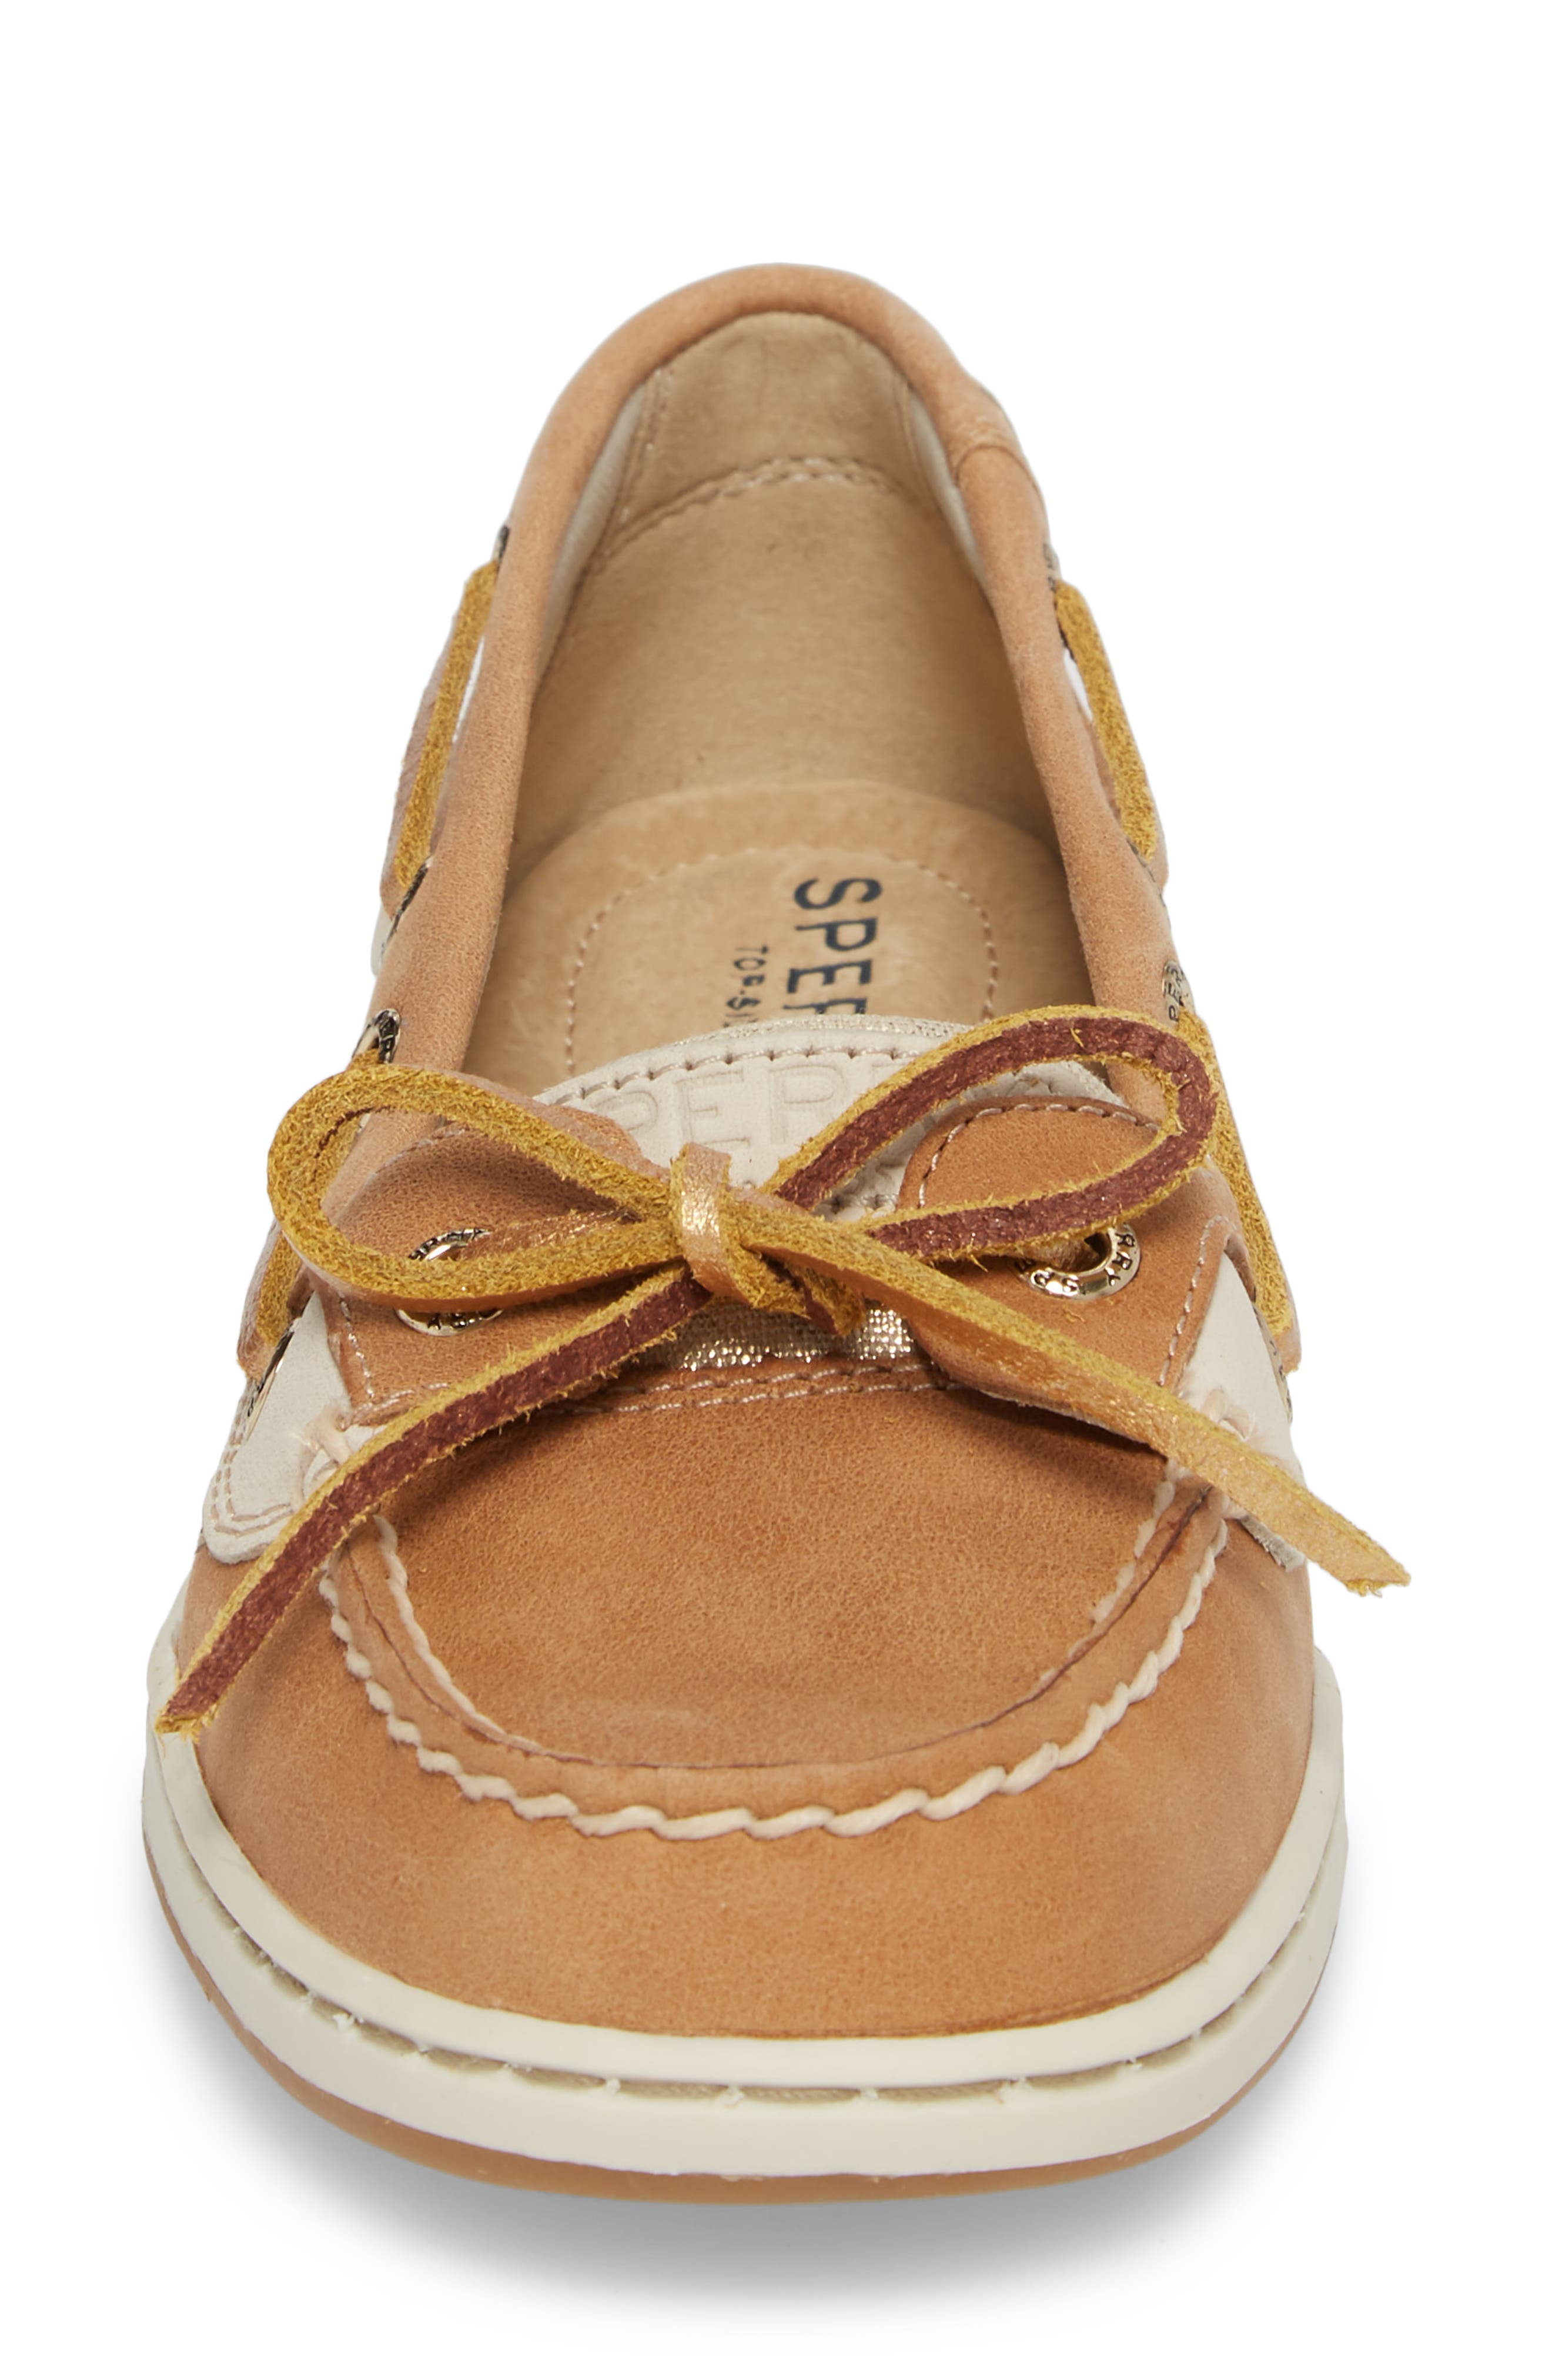 'Angelfish' Boat Shoe,                             Alternate thumbnail 4, color,                             LINEN METALLIC LEATHER